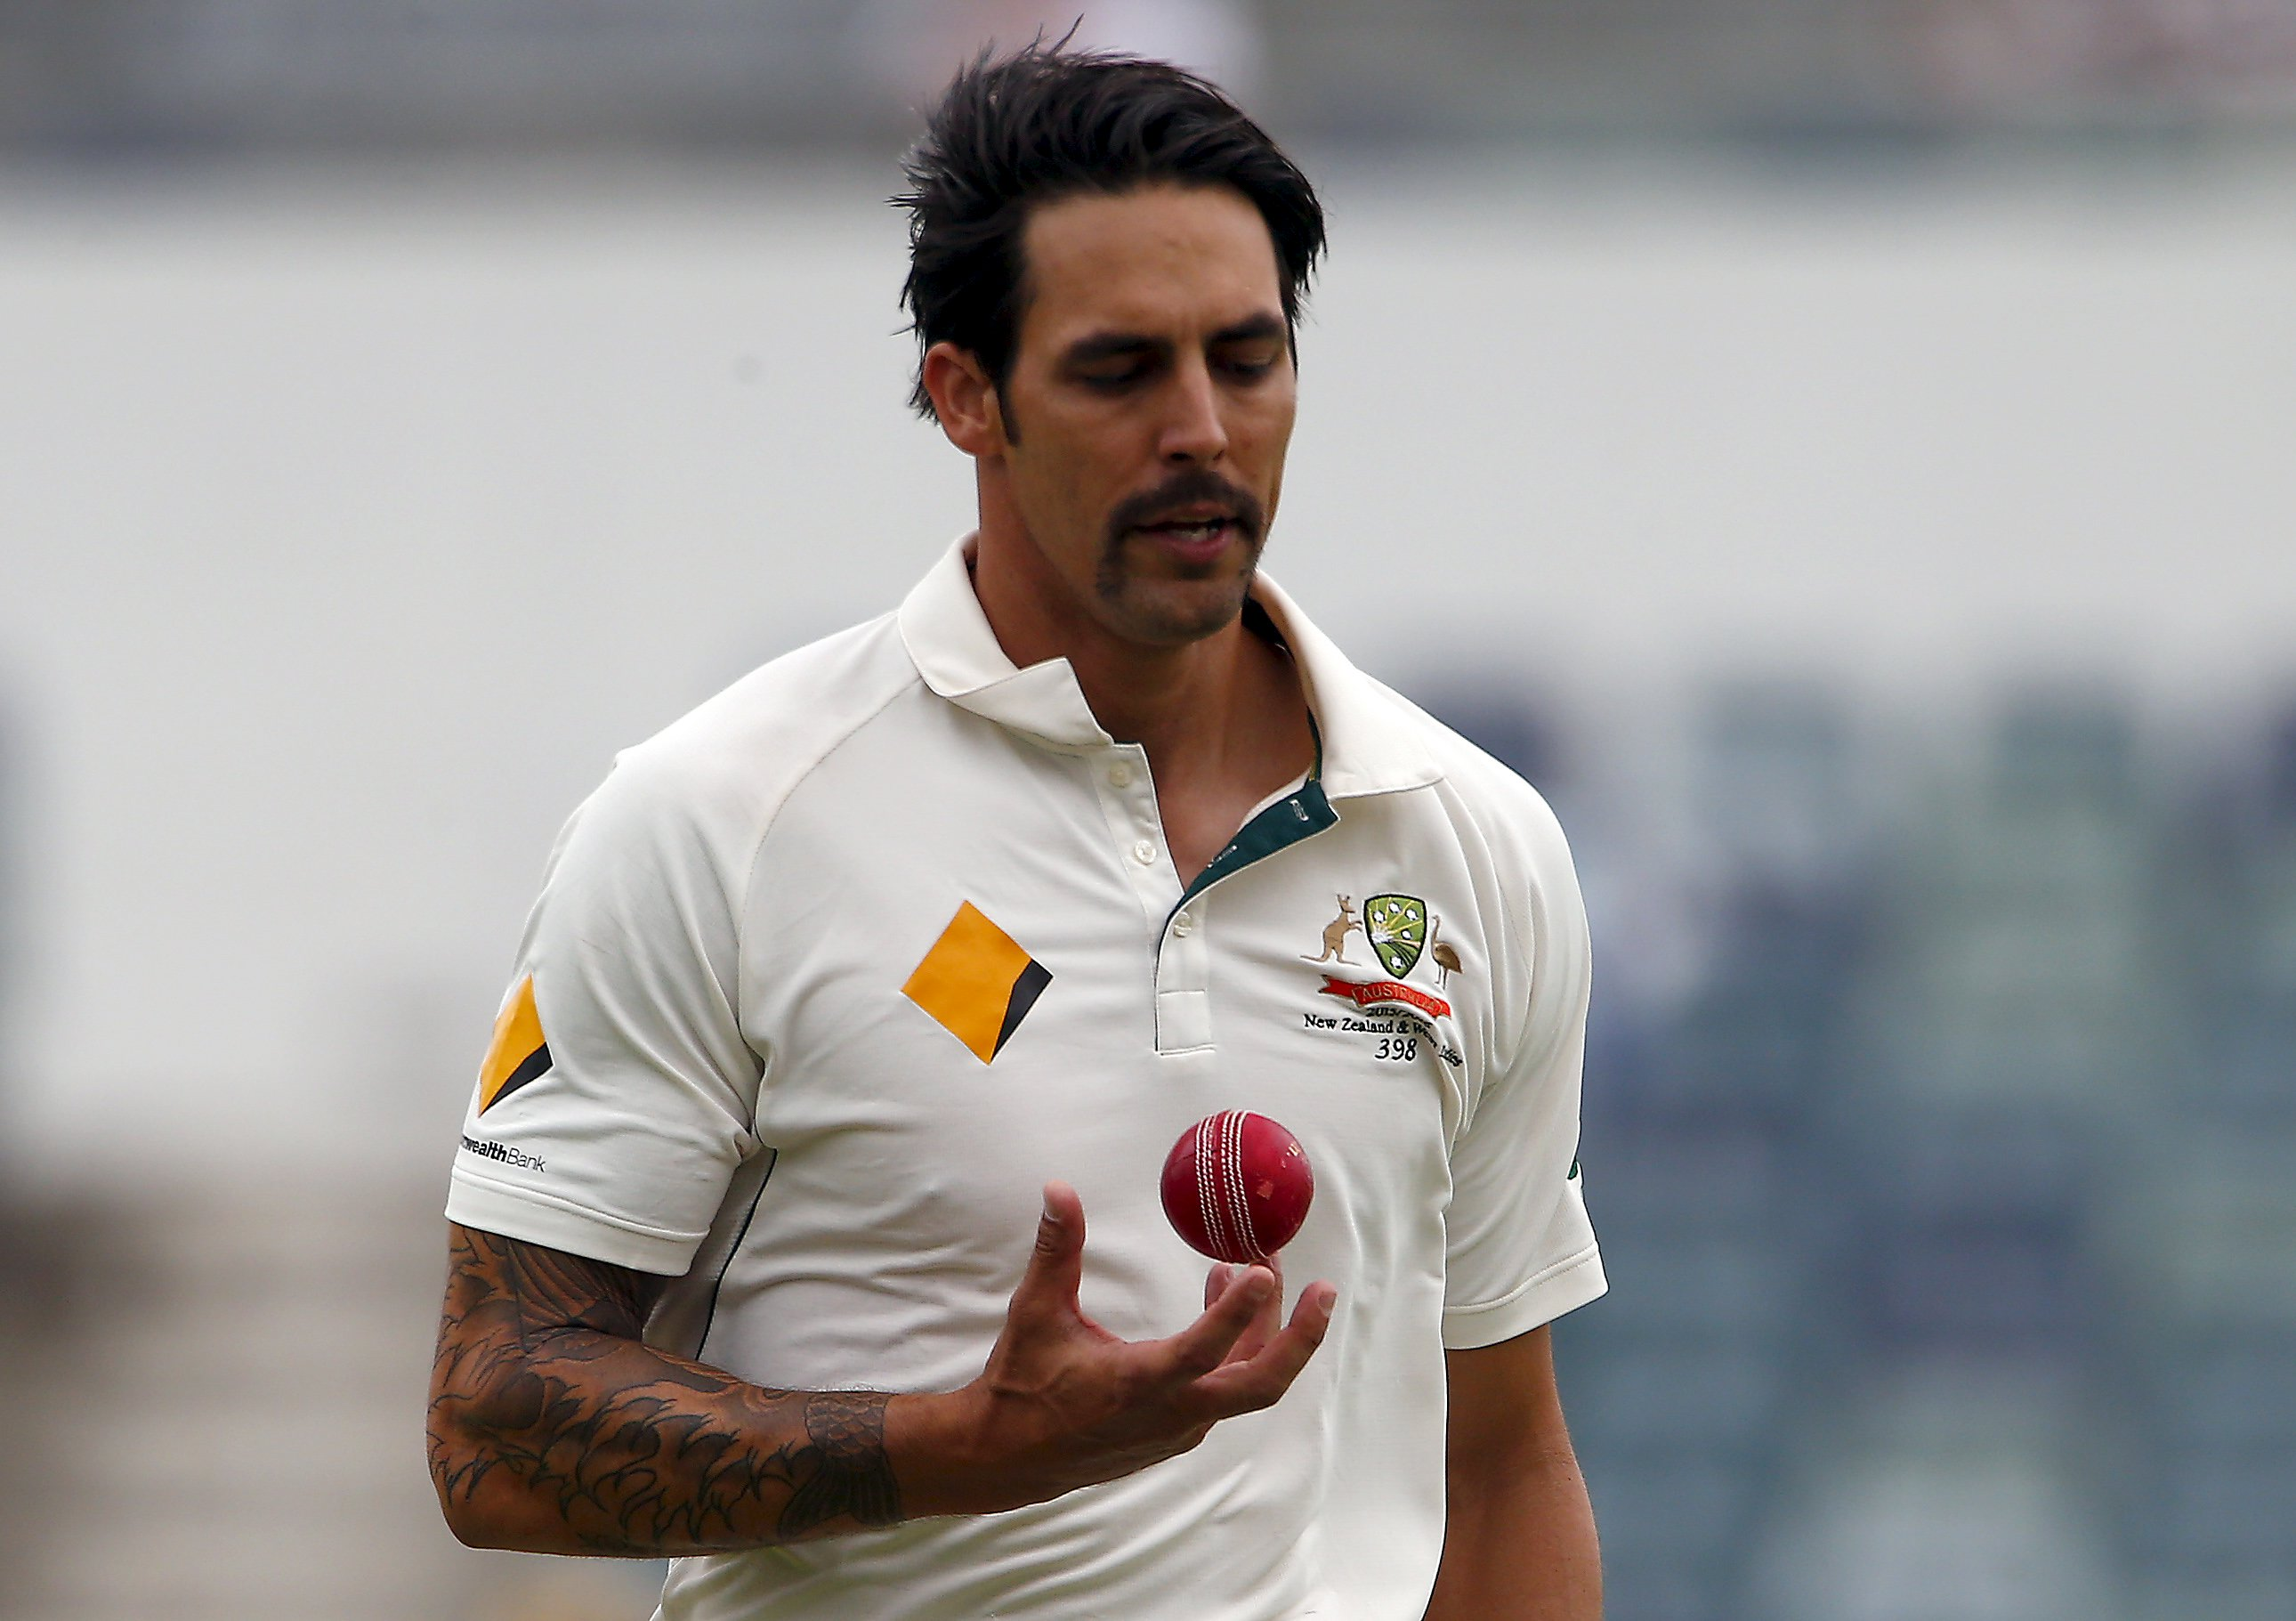 Australia's Mitchell Johnson prepares to bowl during the fifth day of the second cricket test match against New Zealand at the WACA ground in Perth on November 17, 2015. Photo: Reuters